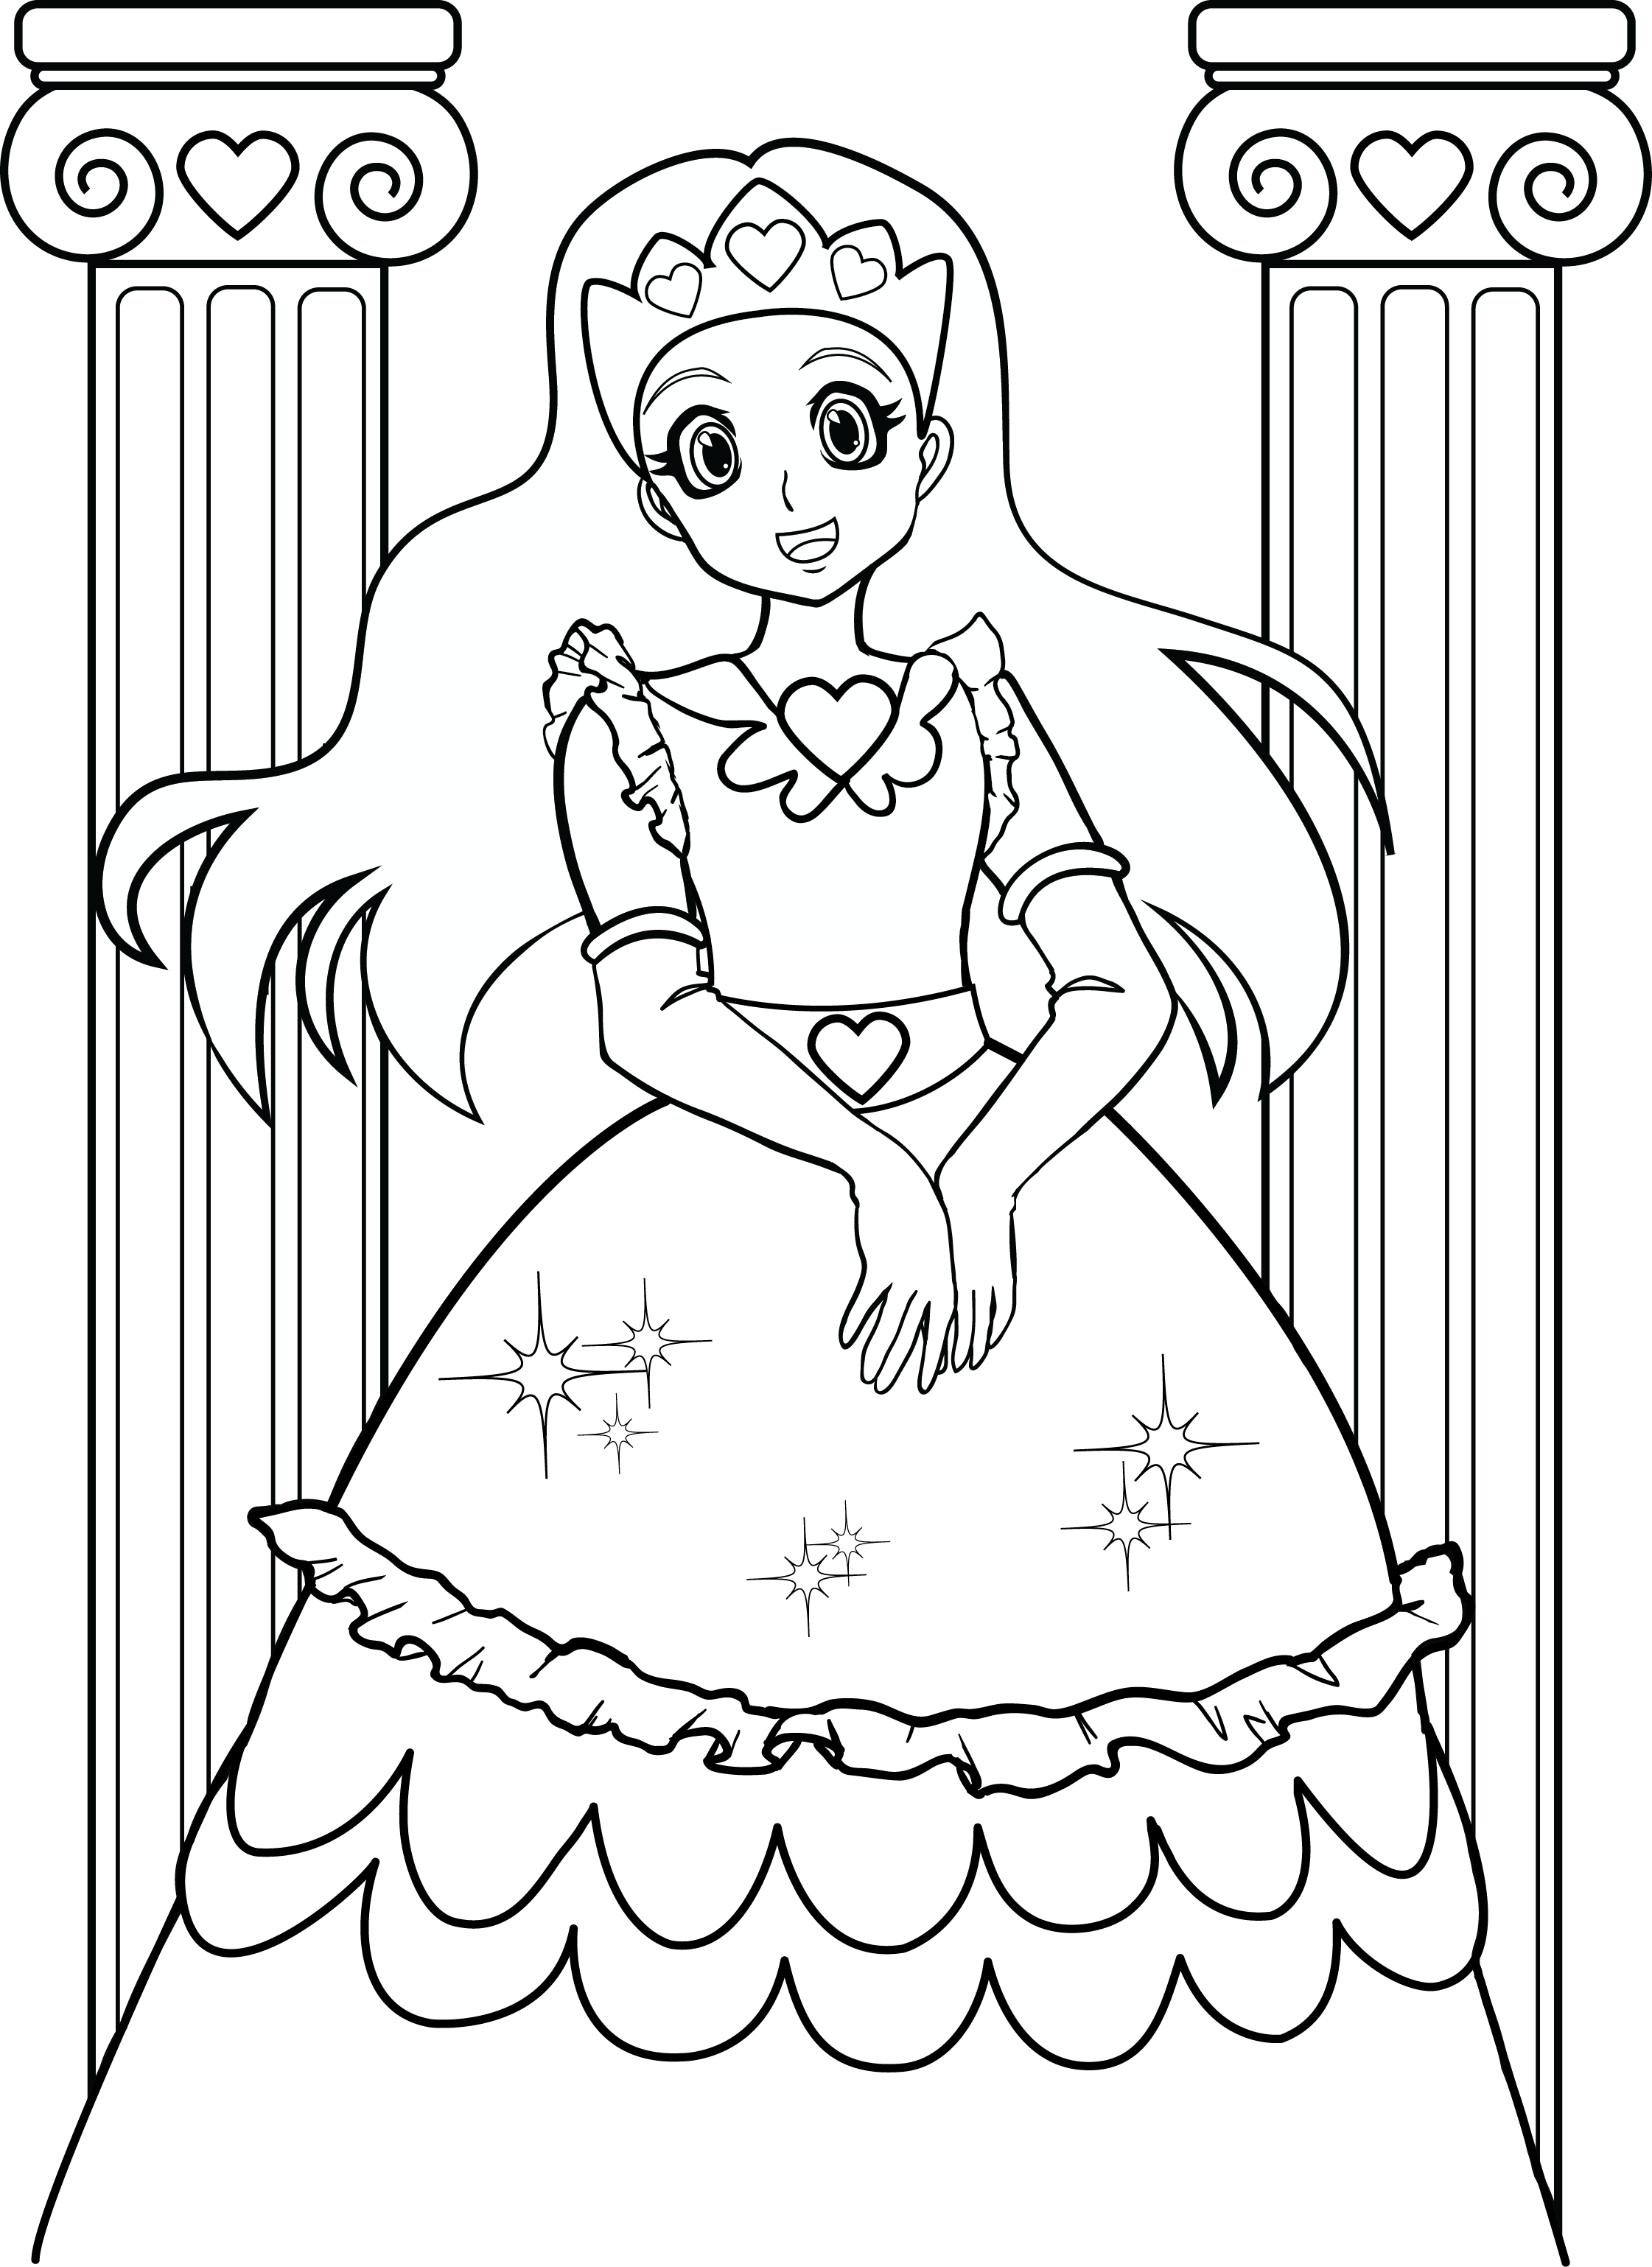 coloring pages for girls - Coloring Pages Girls